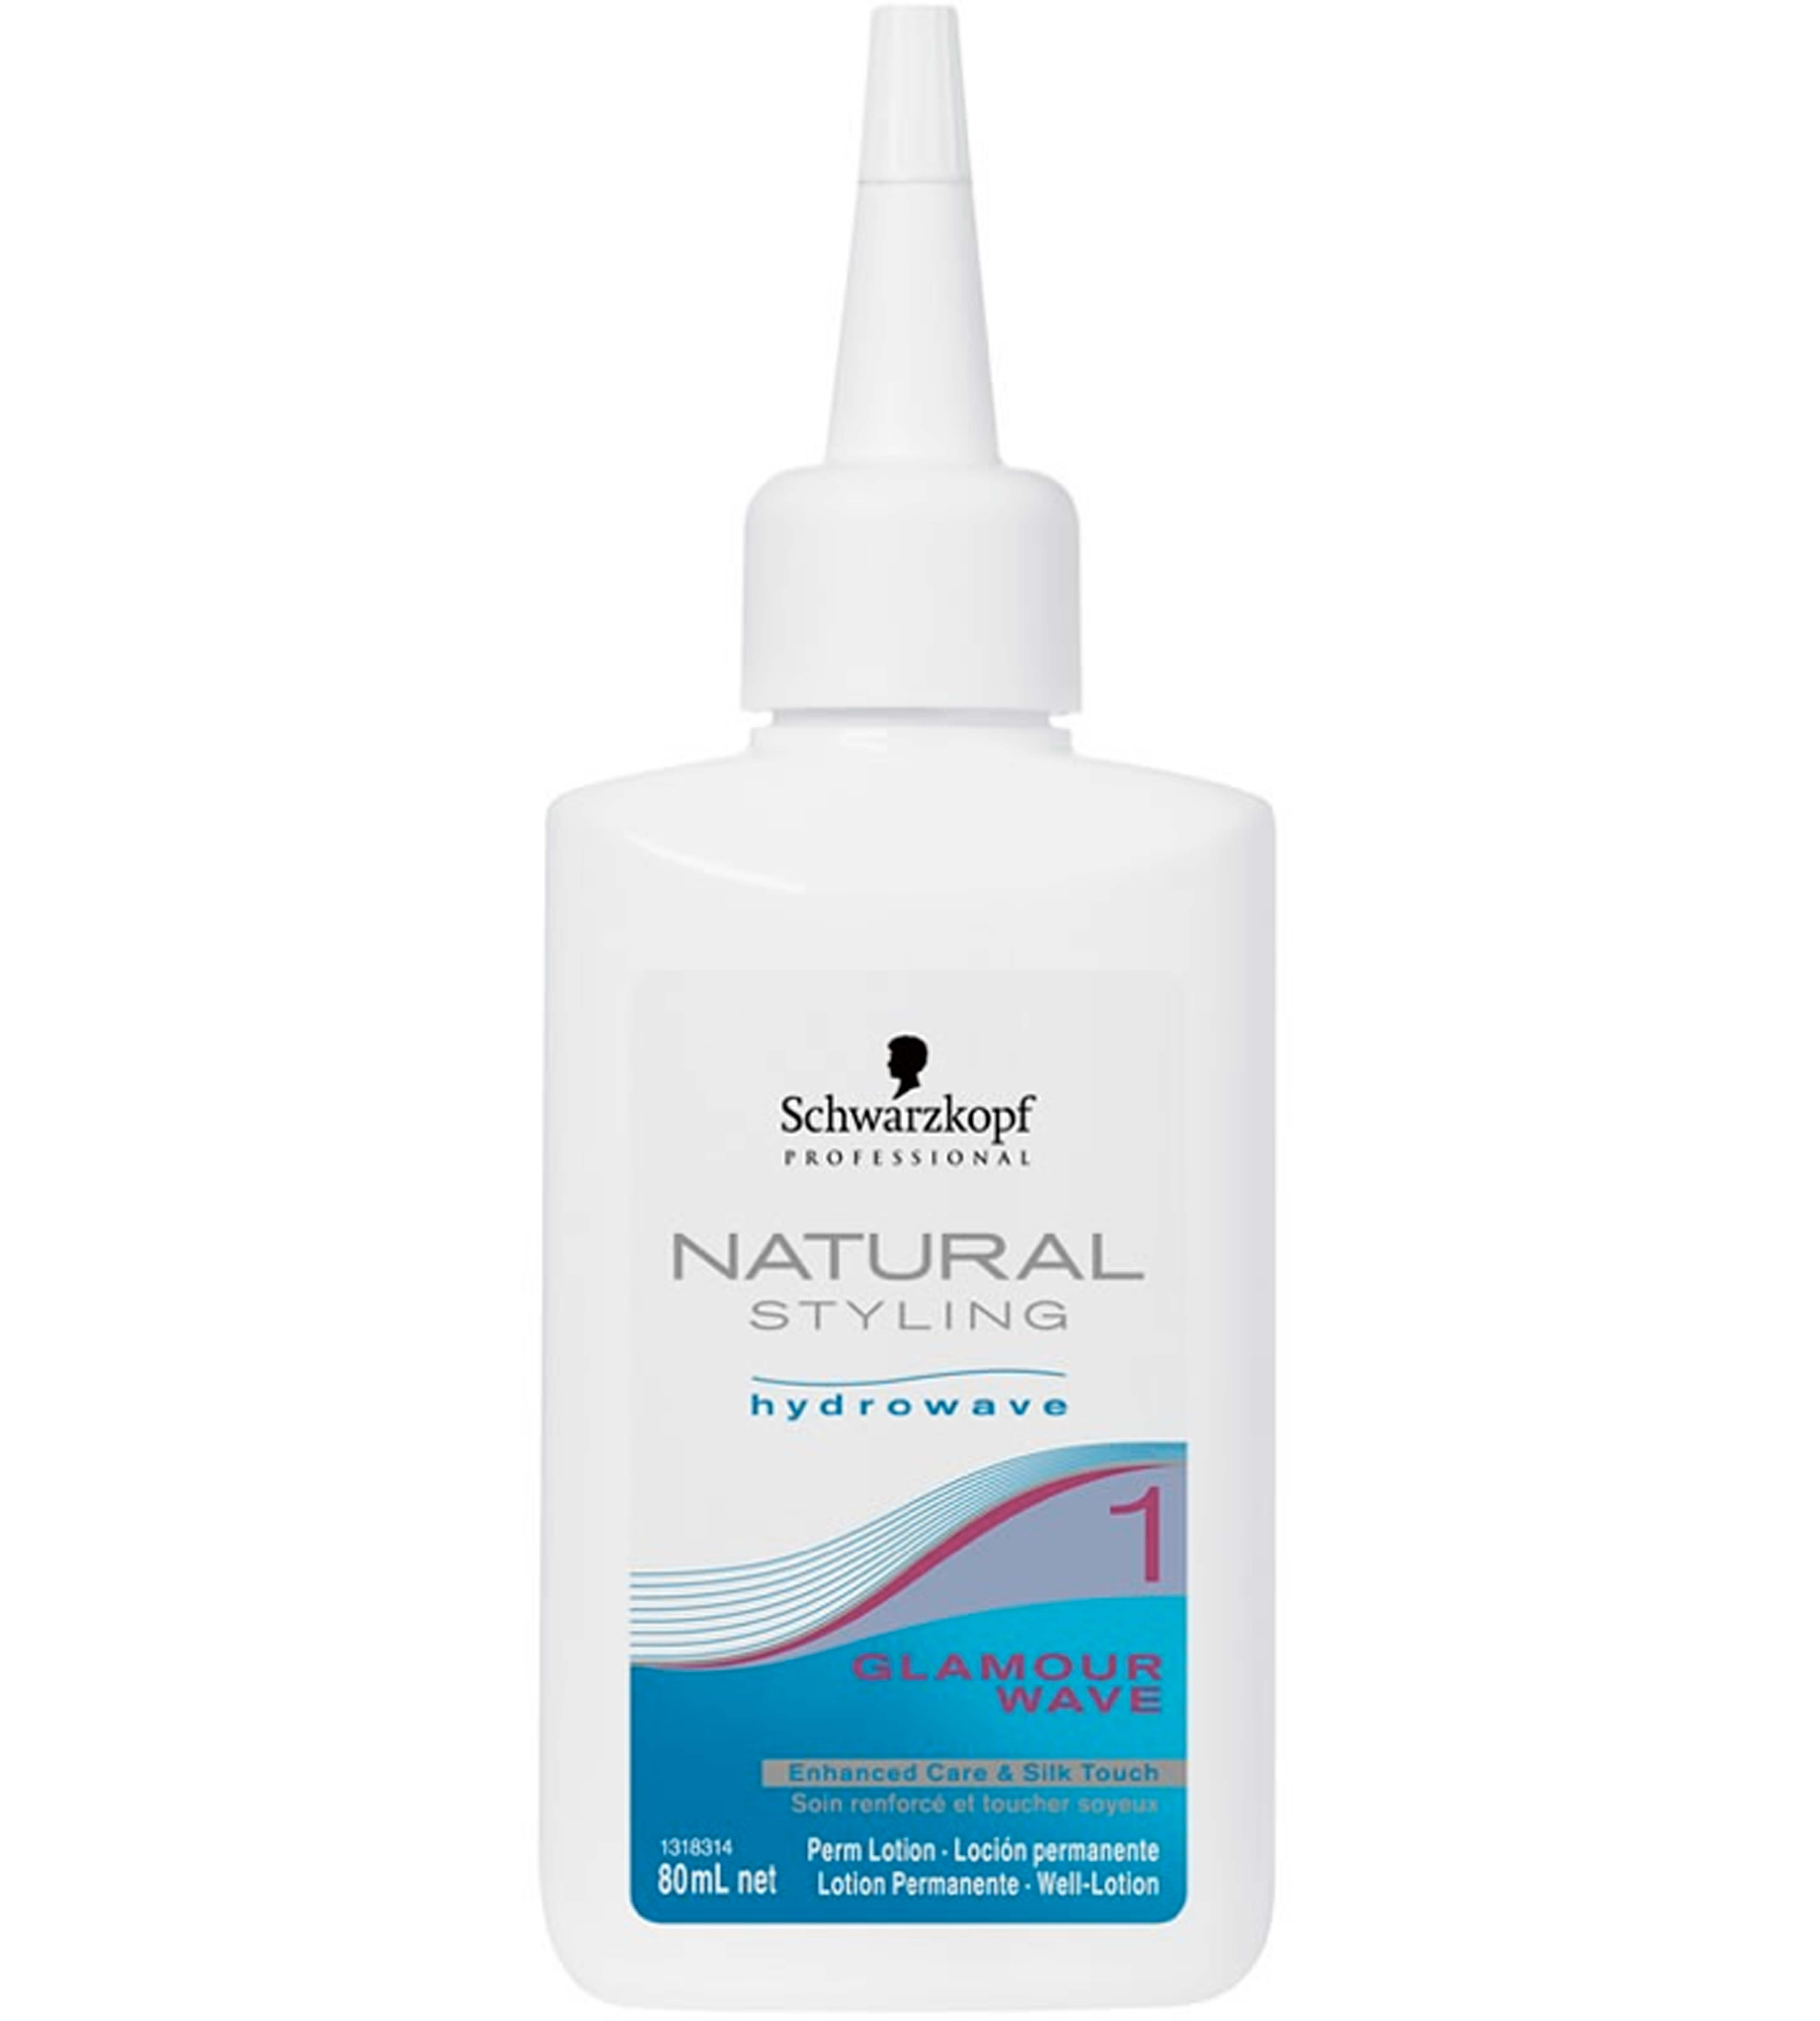 Schwarzkopf Natural Styling Hydrowave Glamour Wave - 0 (for Resistant Hair)